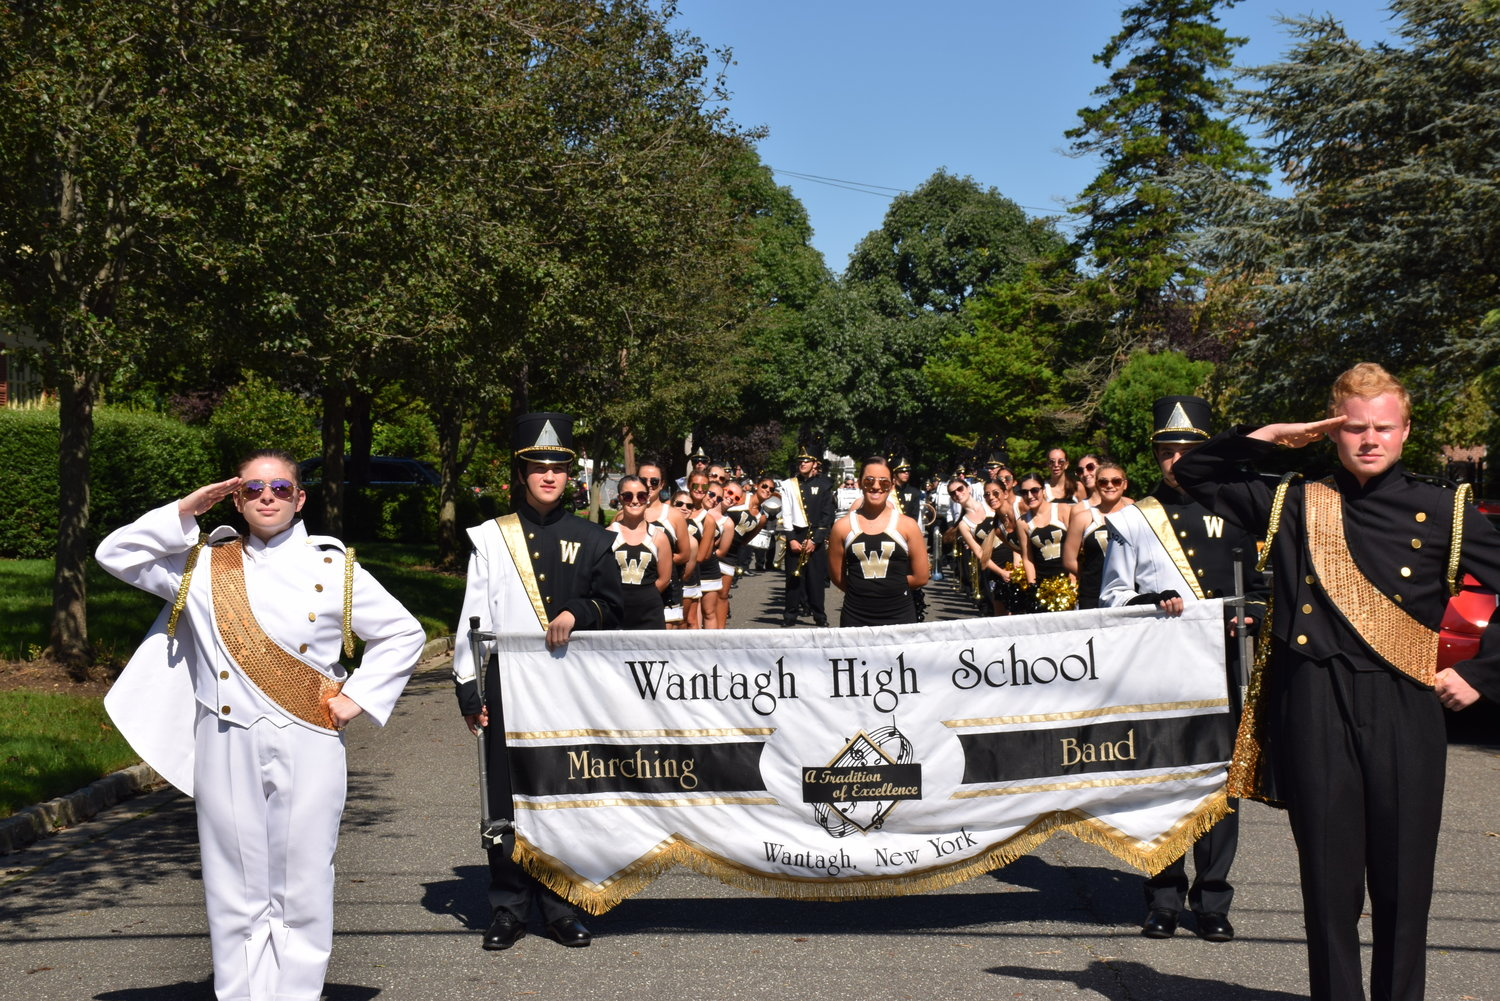 The Wantagh High School marching band led the homecoming parade with drum majors Katherine Proscia, left, and James Seaman.